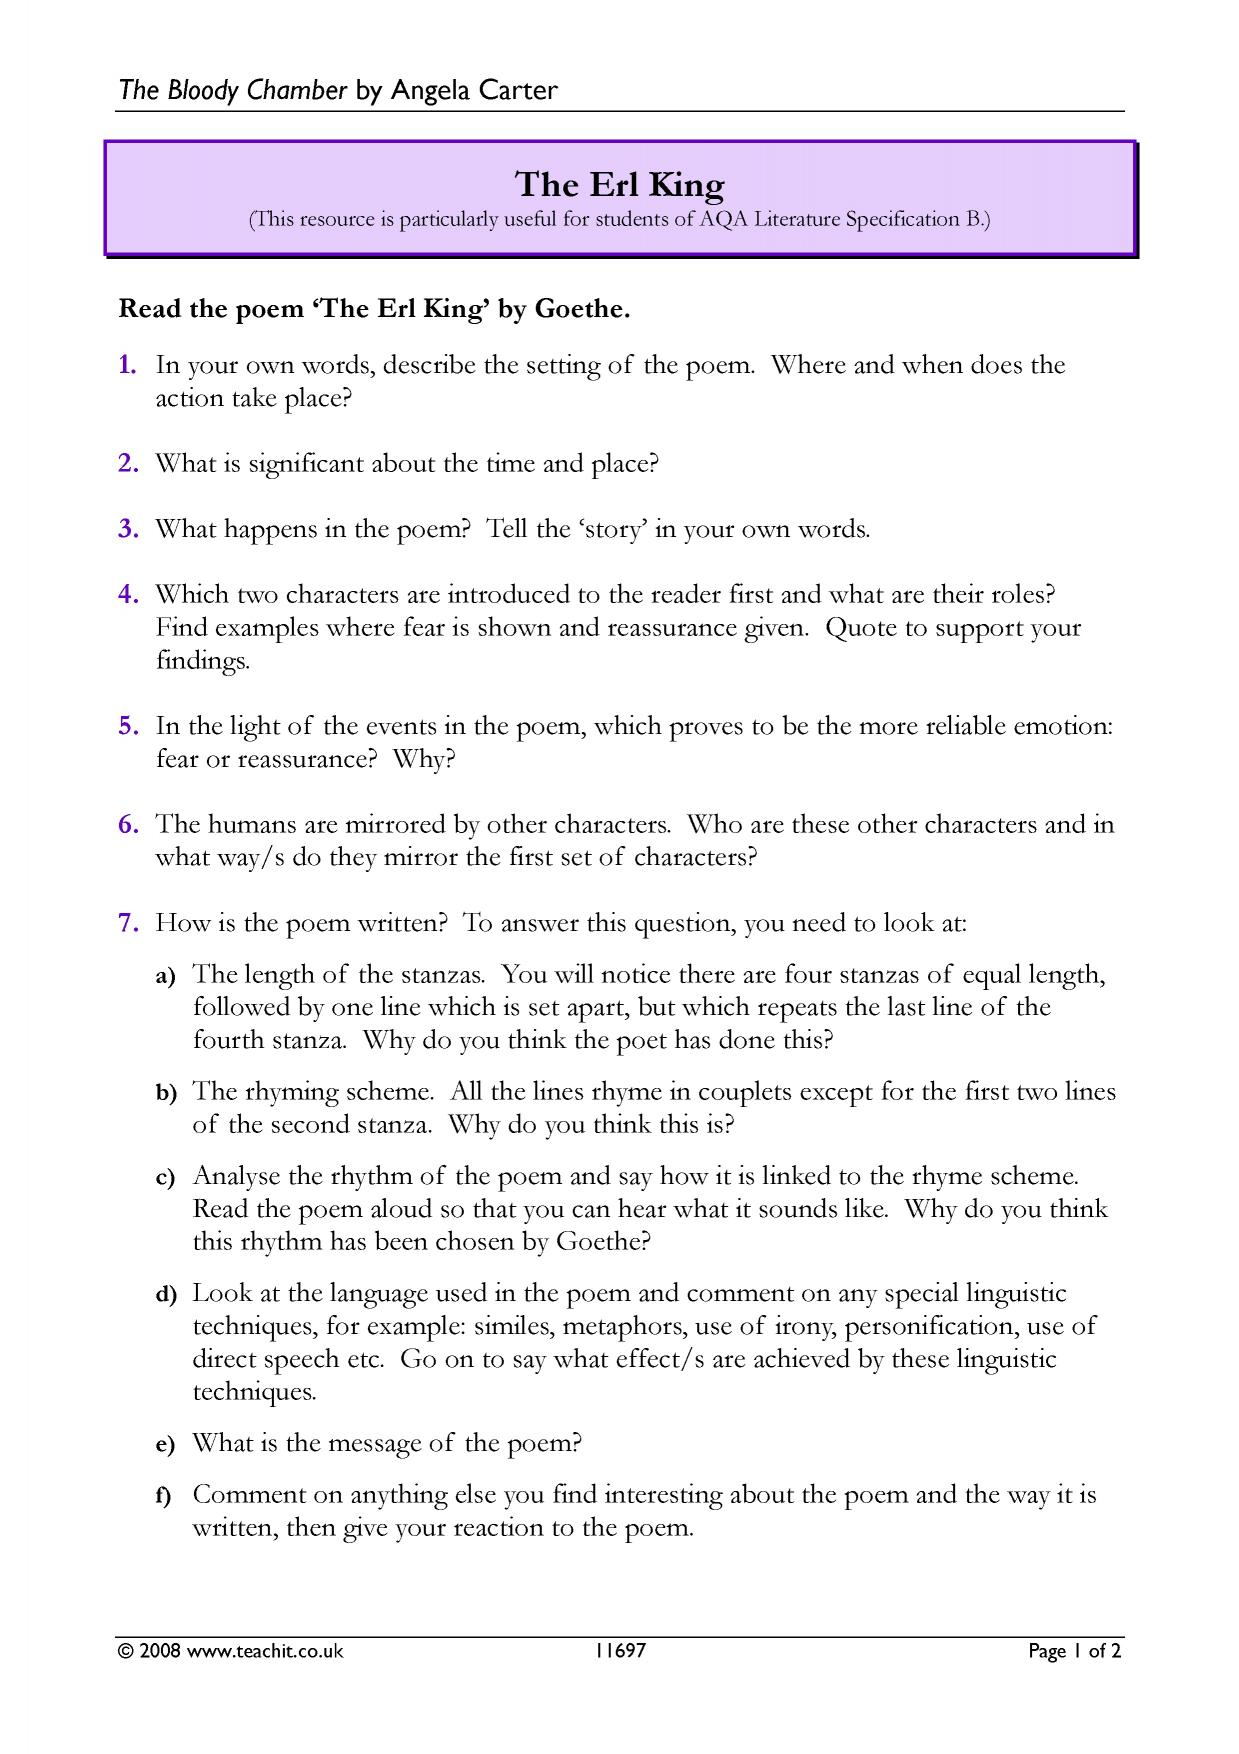 comment essay The sample essays that follow were written in response to the prompt that appears belowthe rater commentary that follows each sample essay explains how the response meets the criteria for that score.